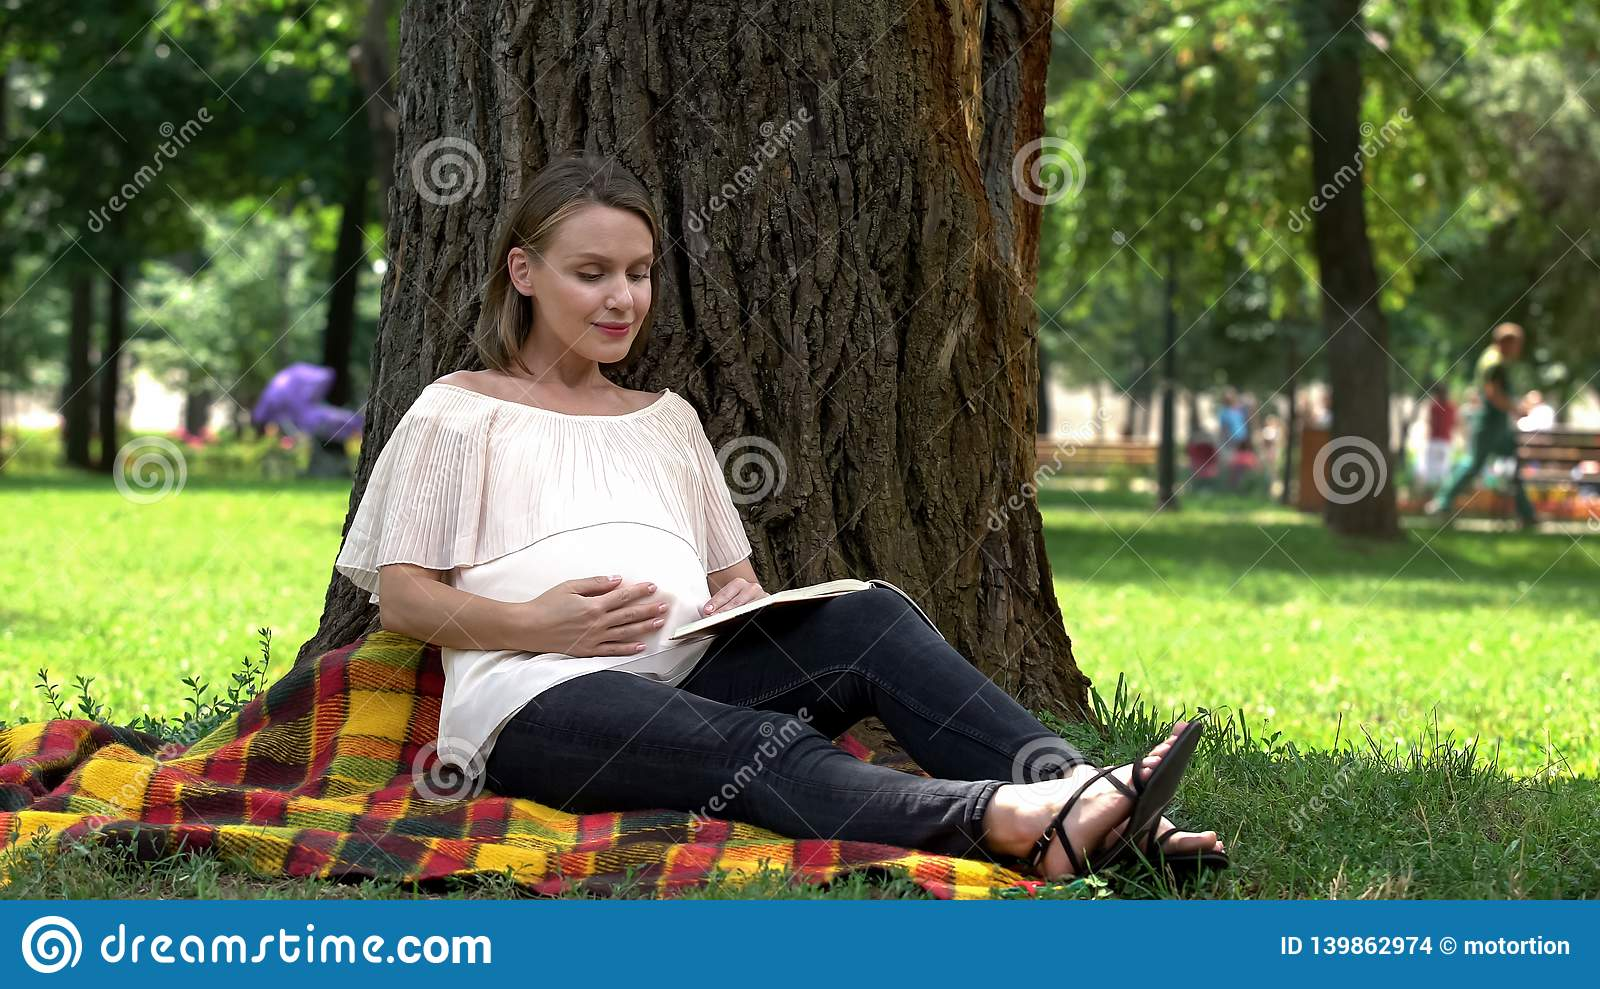 Pregnant woman reading book in park, relaxing outdoors, health and prenatal care